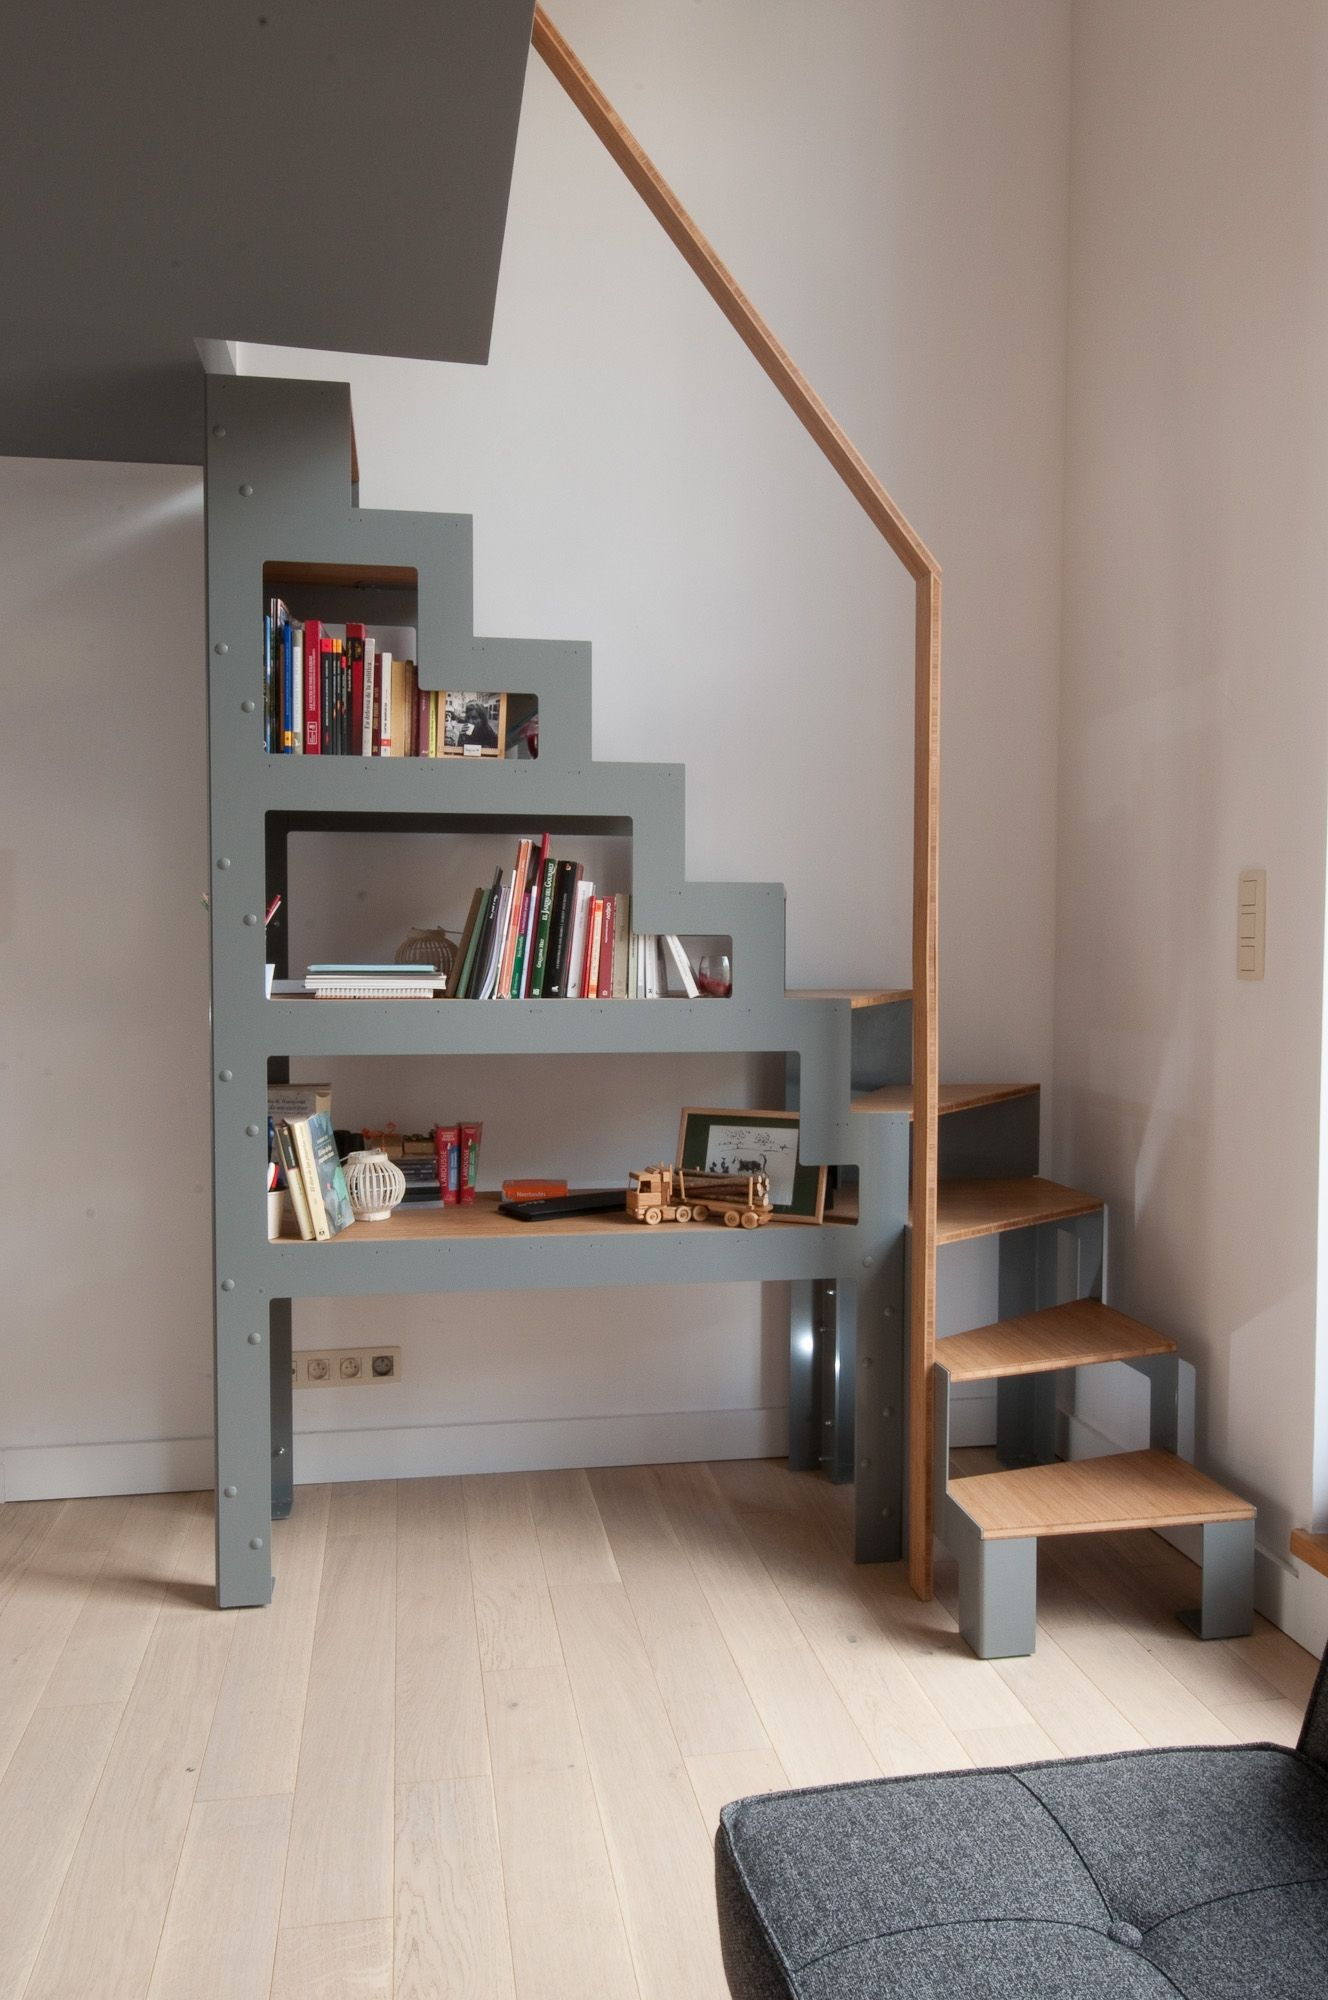 Stairs Shelving Libro Is A Free Staircase A Cross Between Shelving And